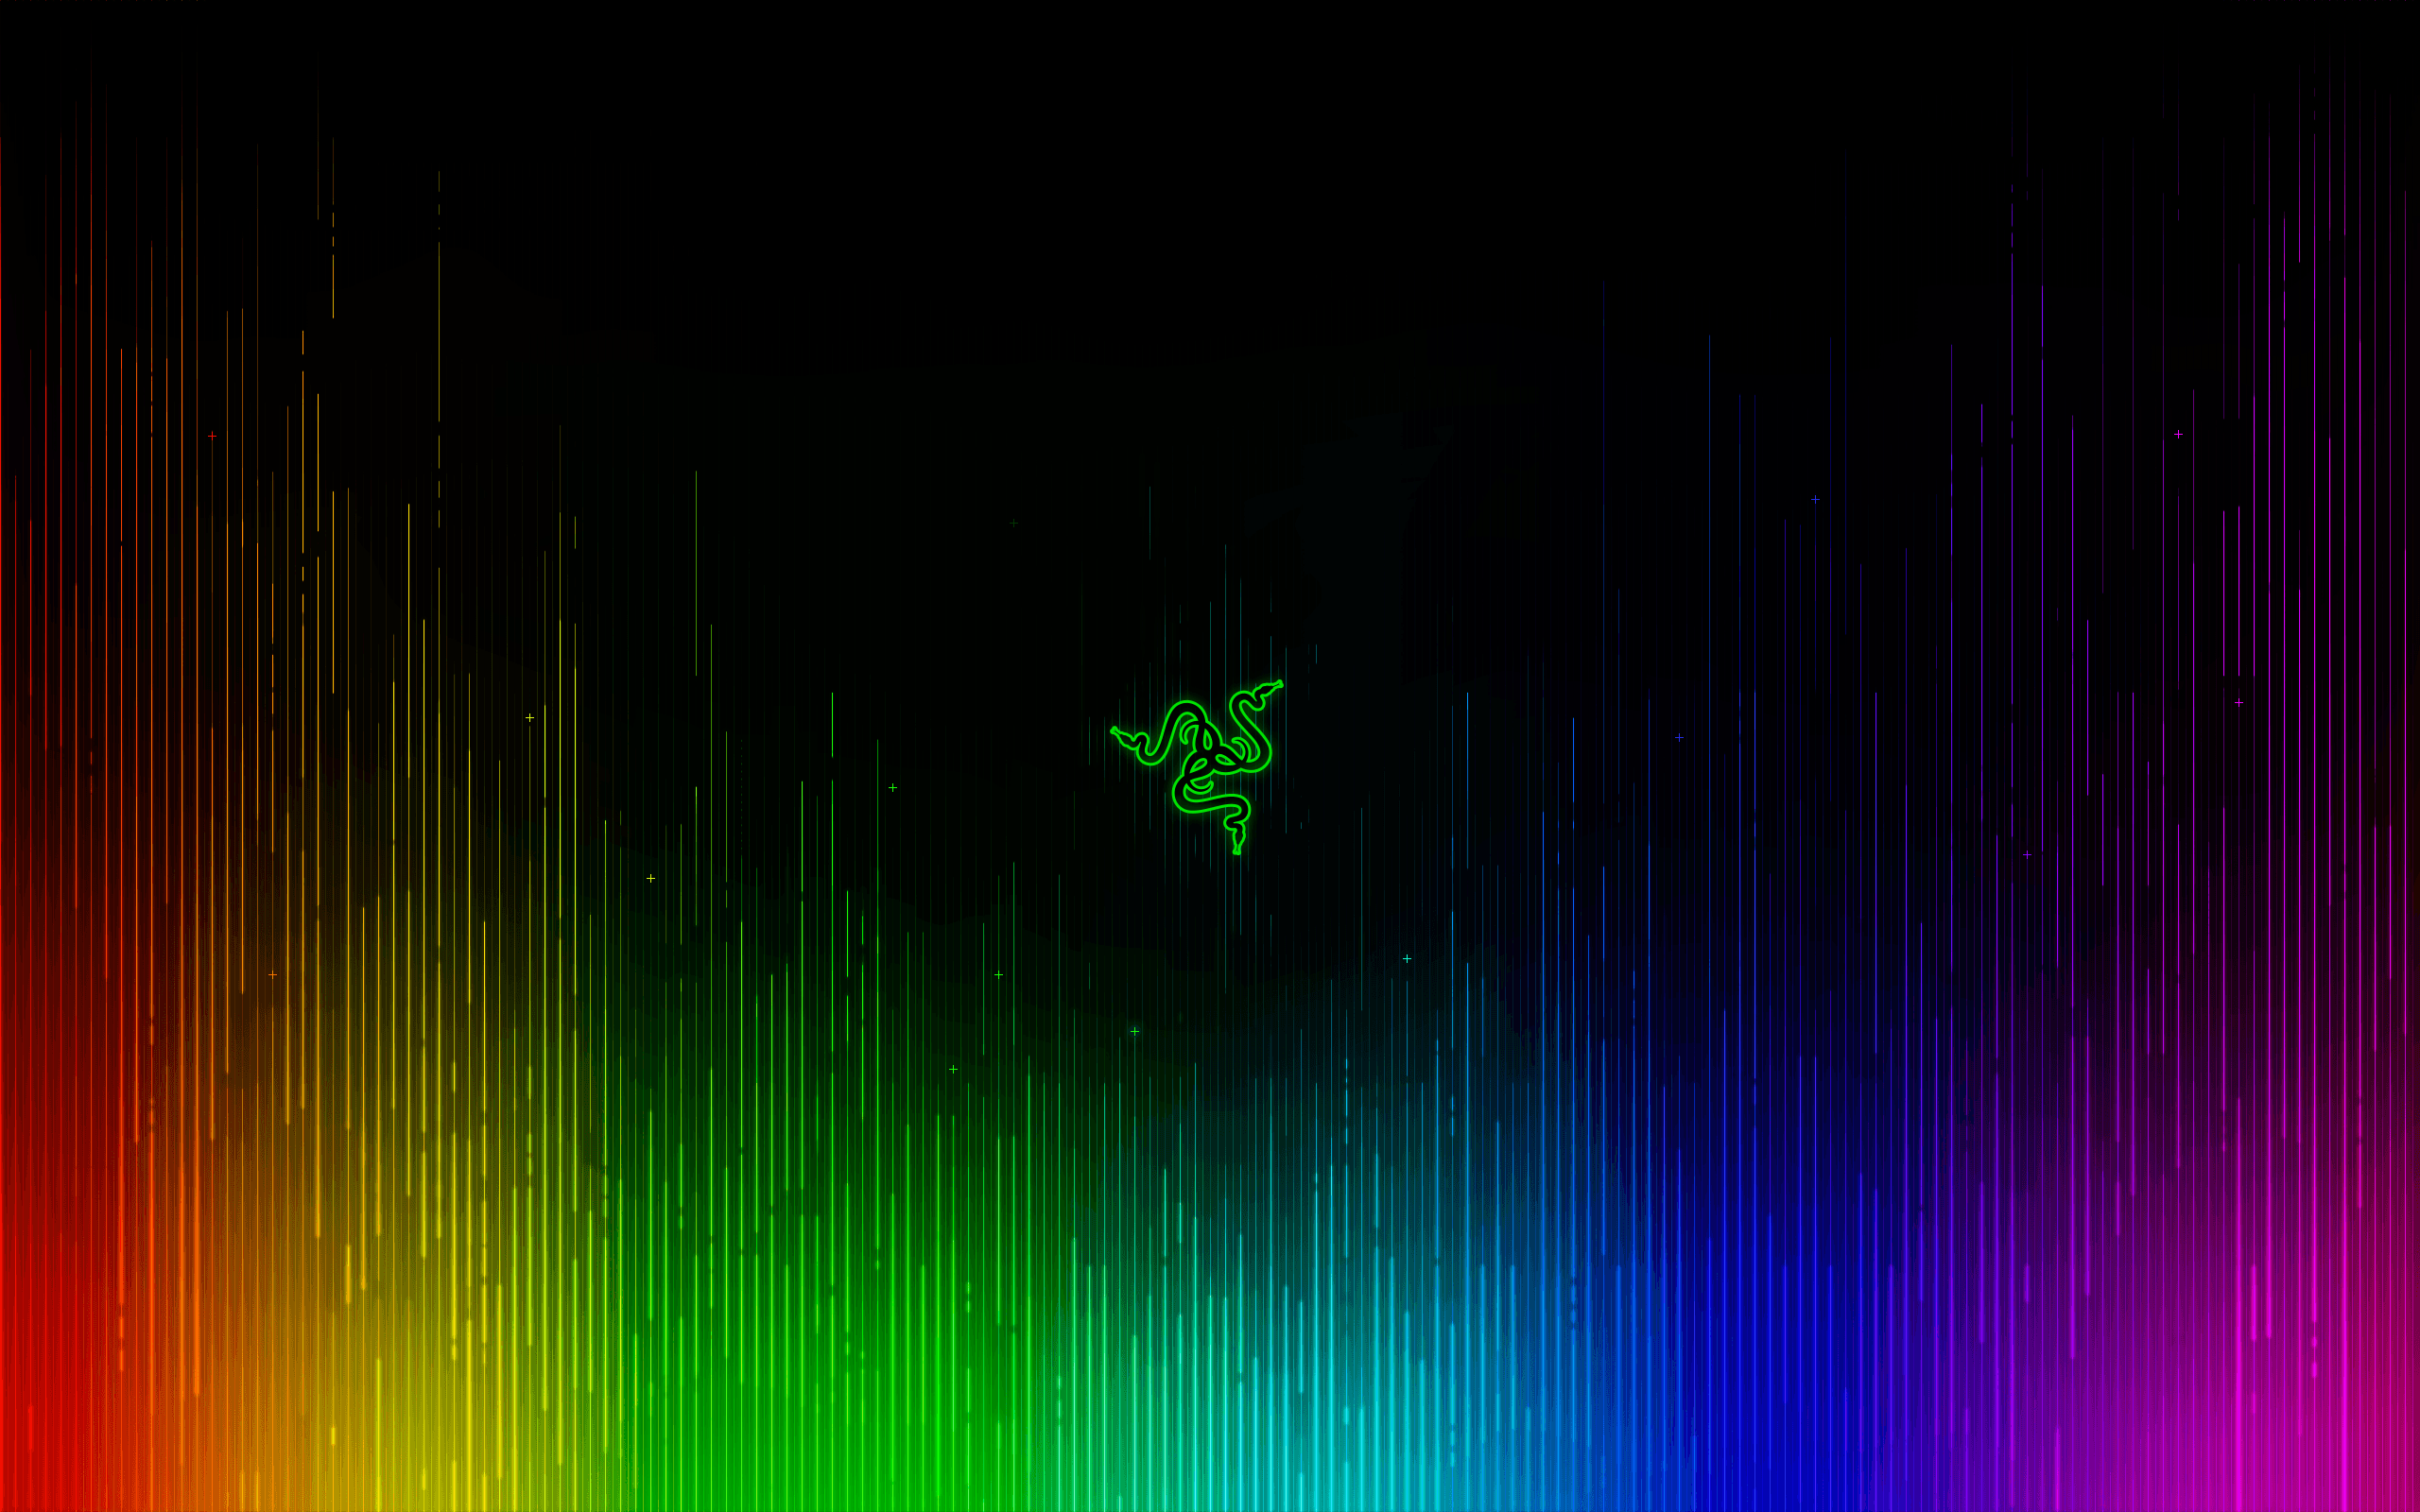 razer wallpapers